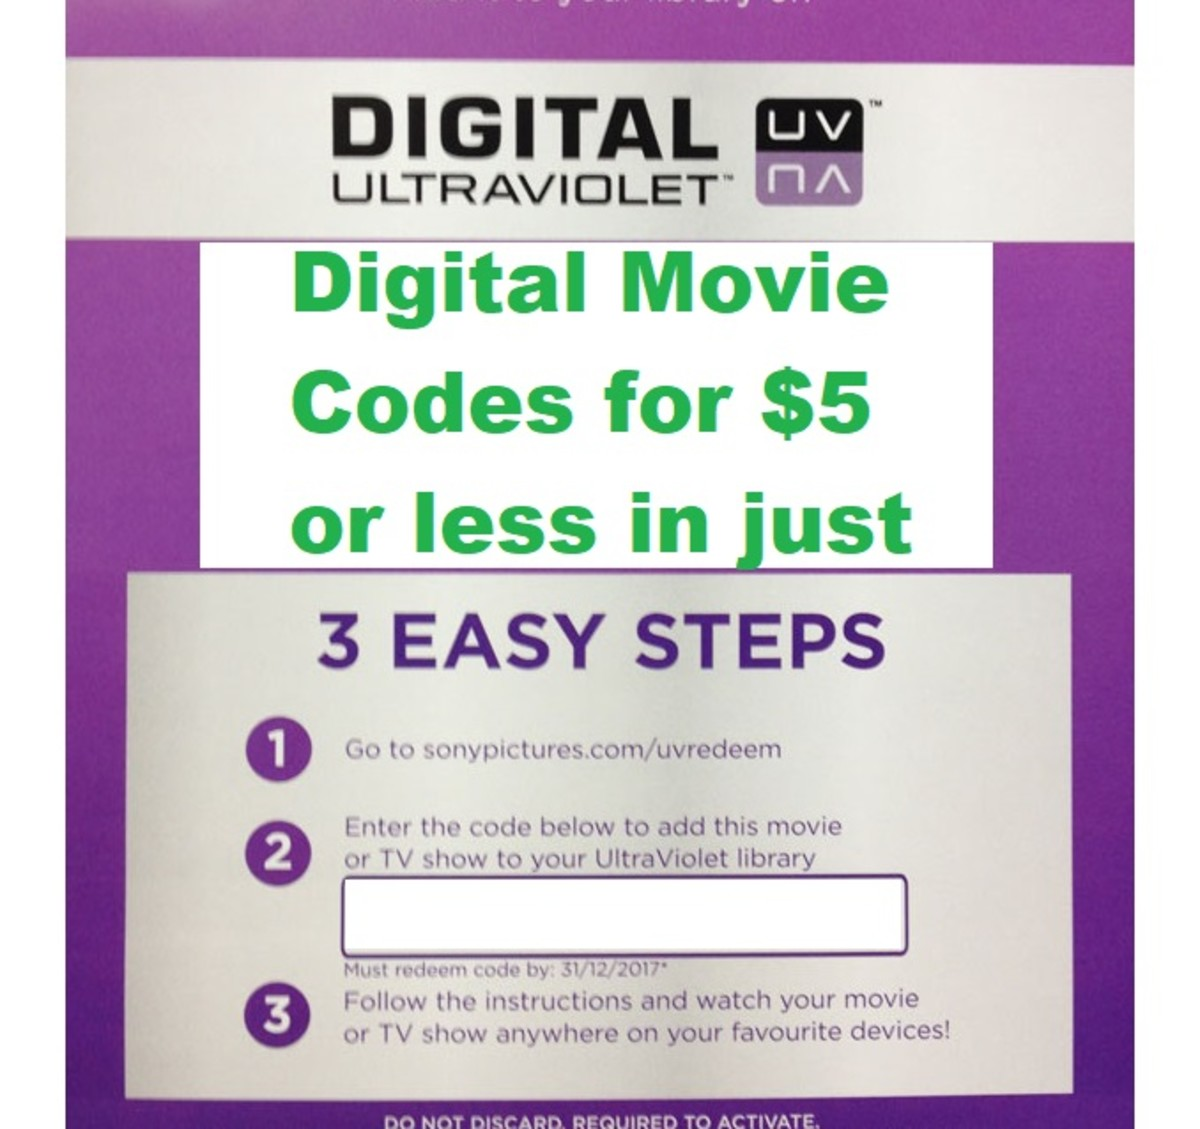 Top 3 Ways To Get Digital Movies for Little to No Cost